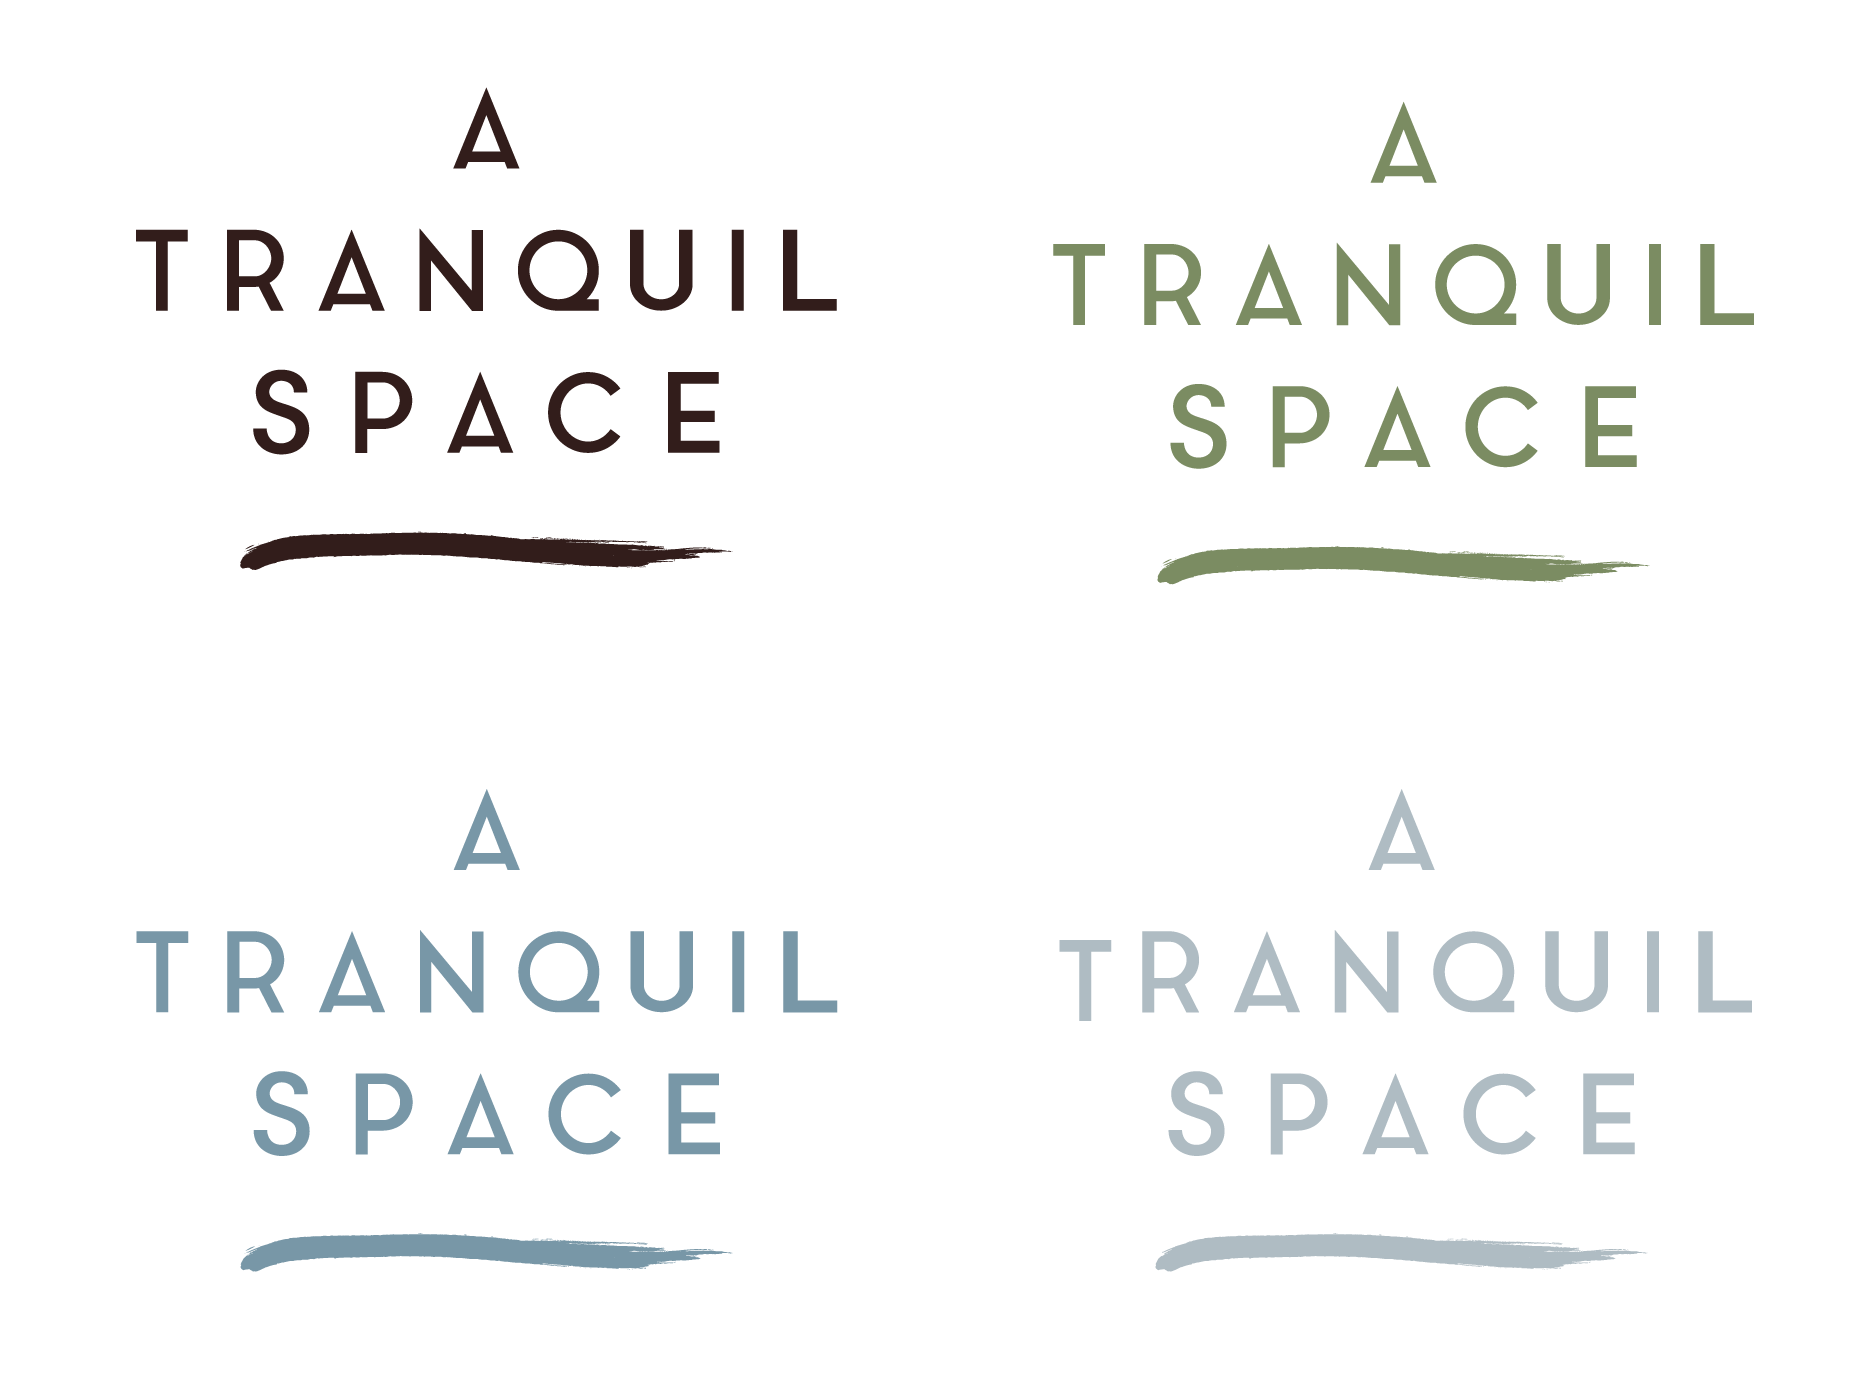 A Tranquil Space logo